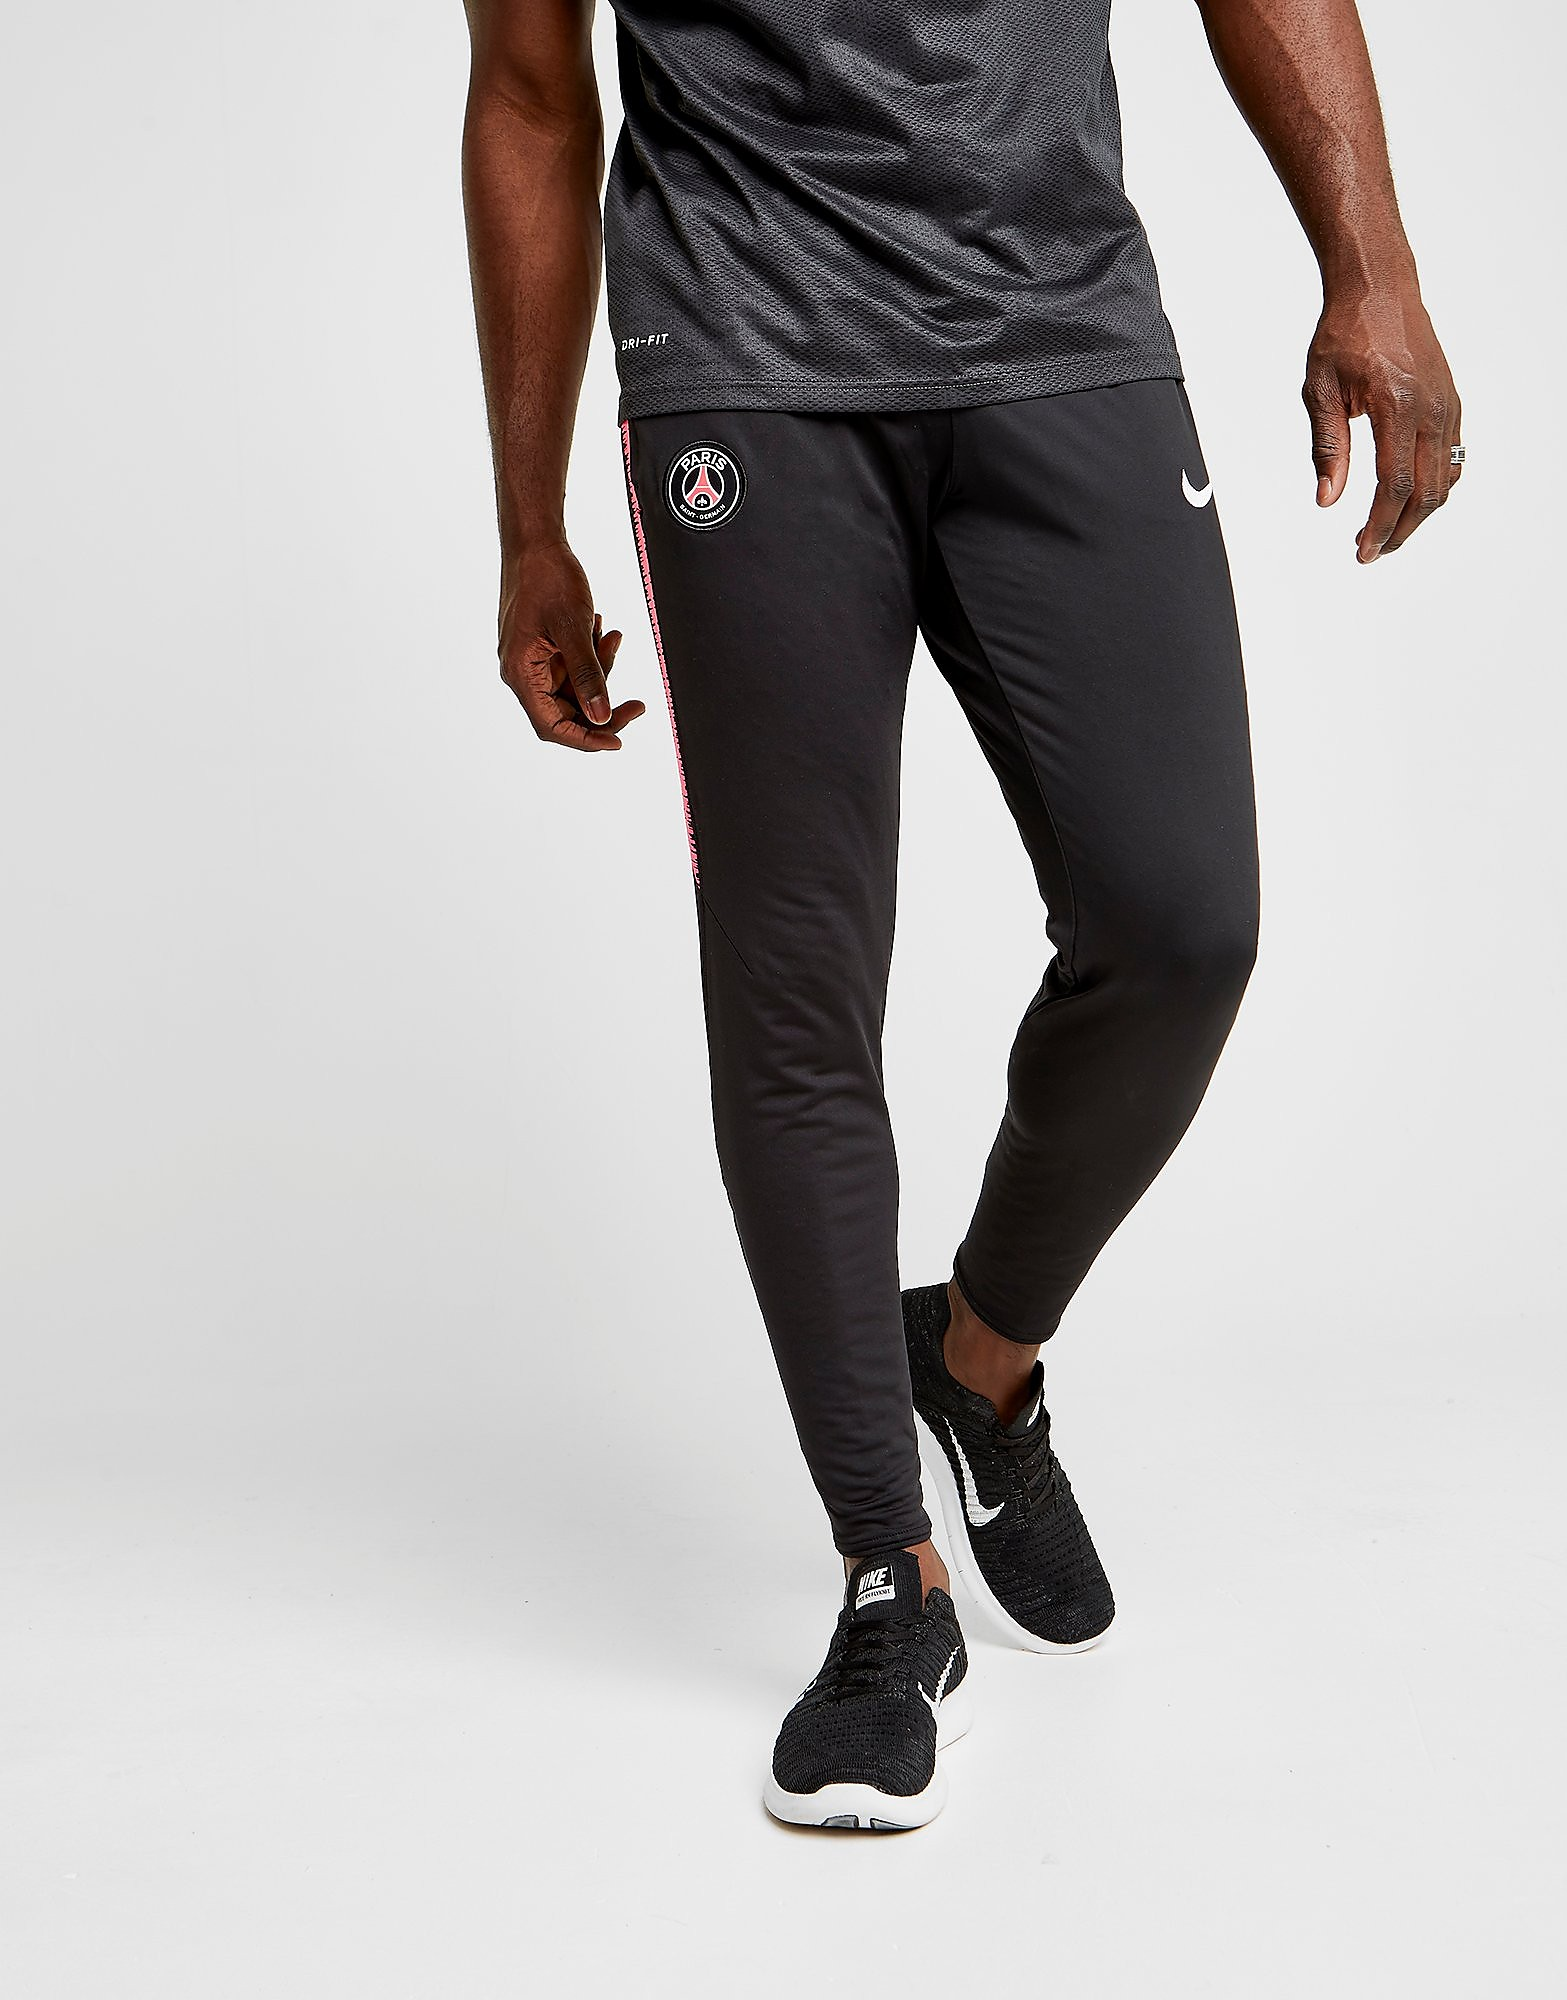 Nike Paris Saint Germain 2018/19 Squad Pants